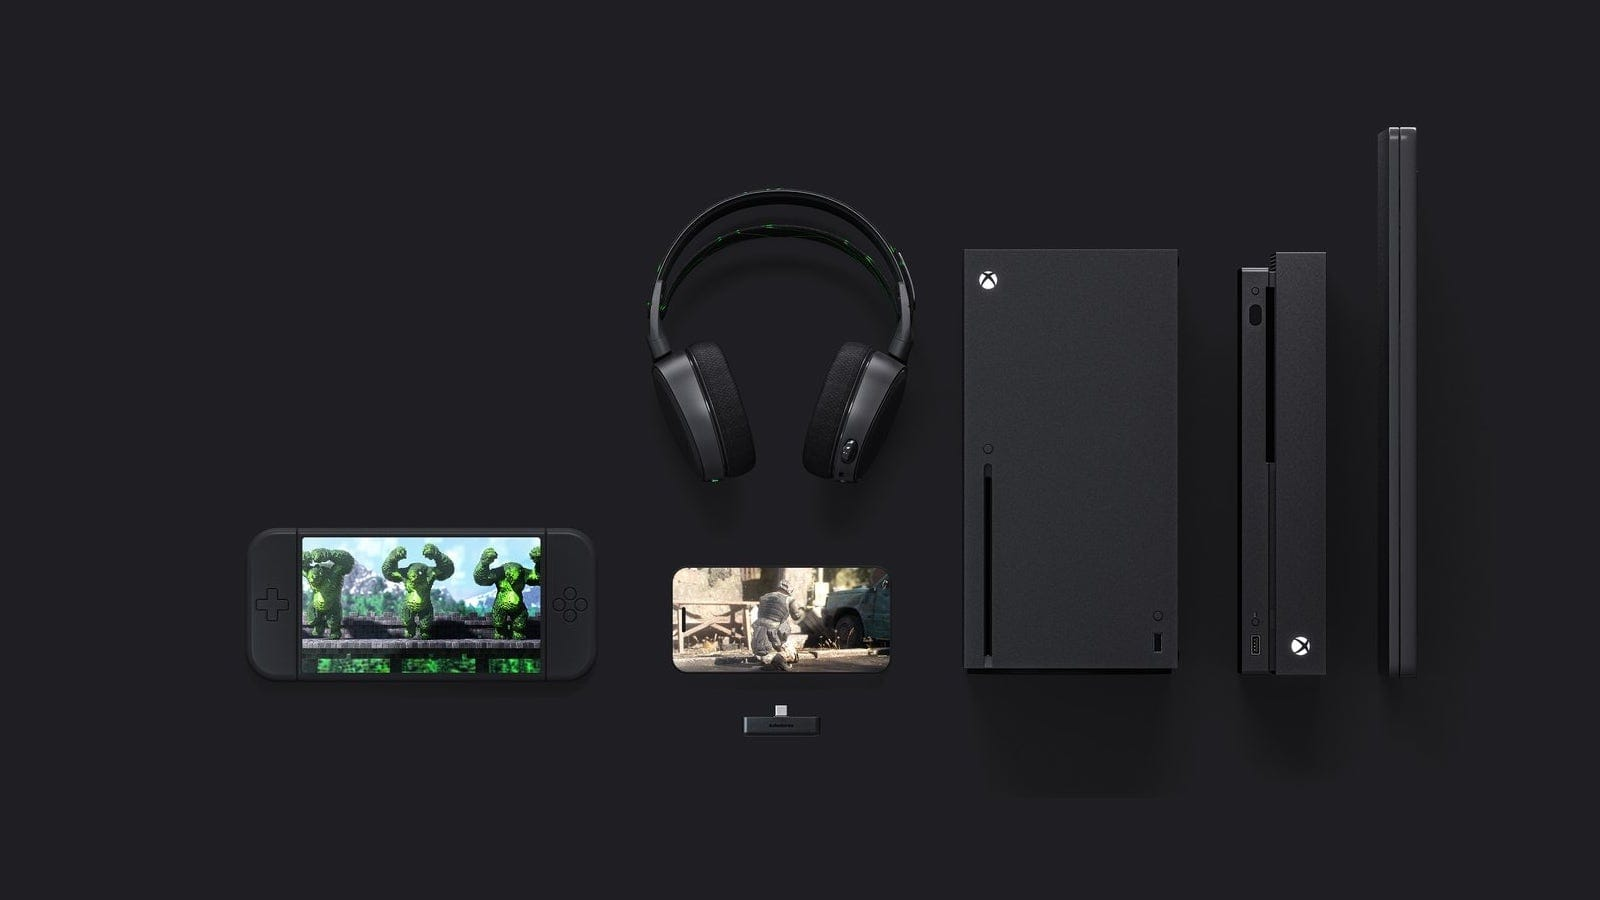 SteelSeries Arctis 7X wireless gaming headset for Xbox offers lossless connectivity